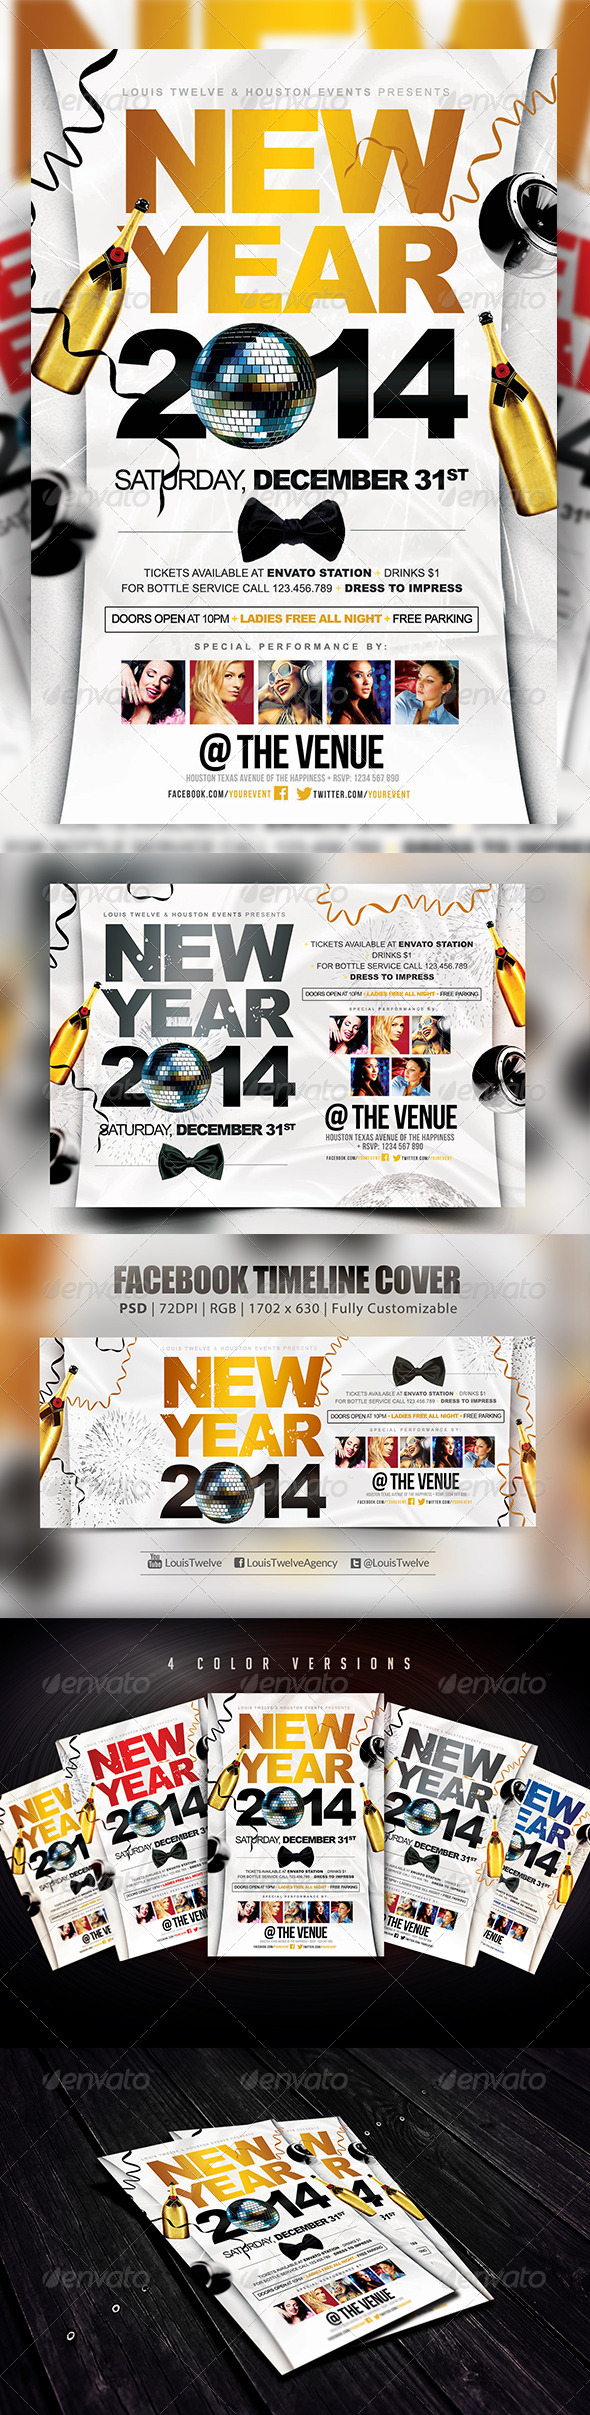 New Year Party Flyers & FB Cover